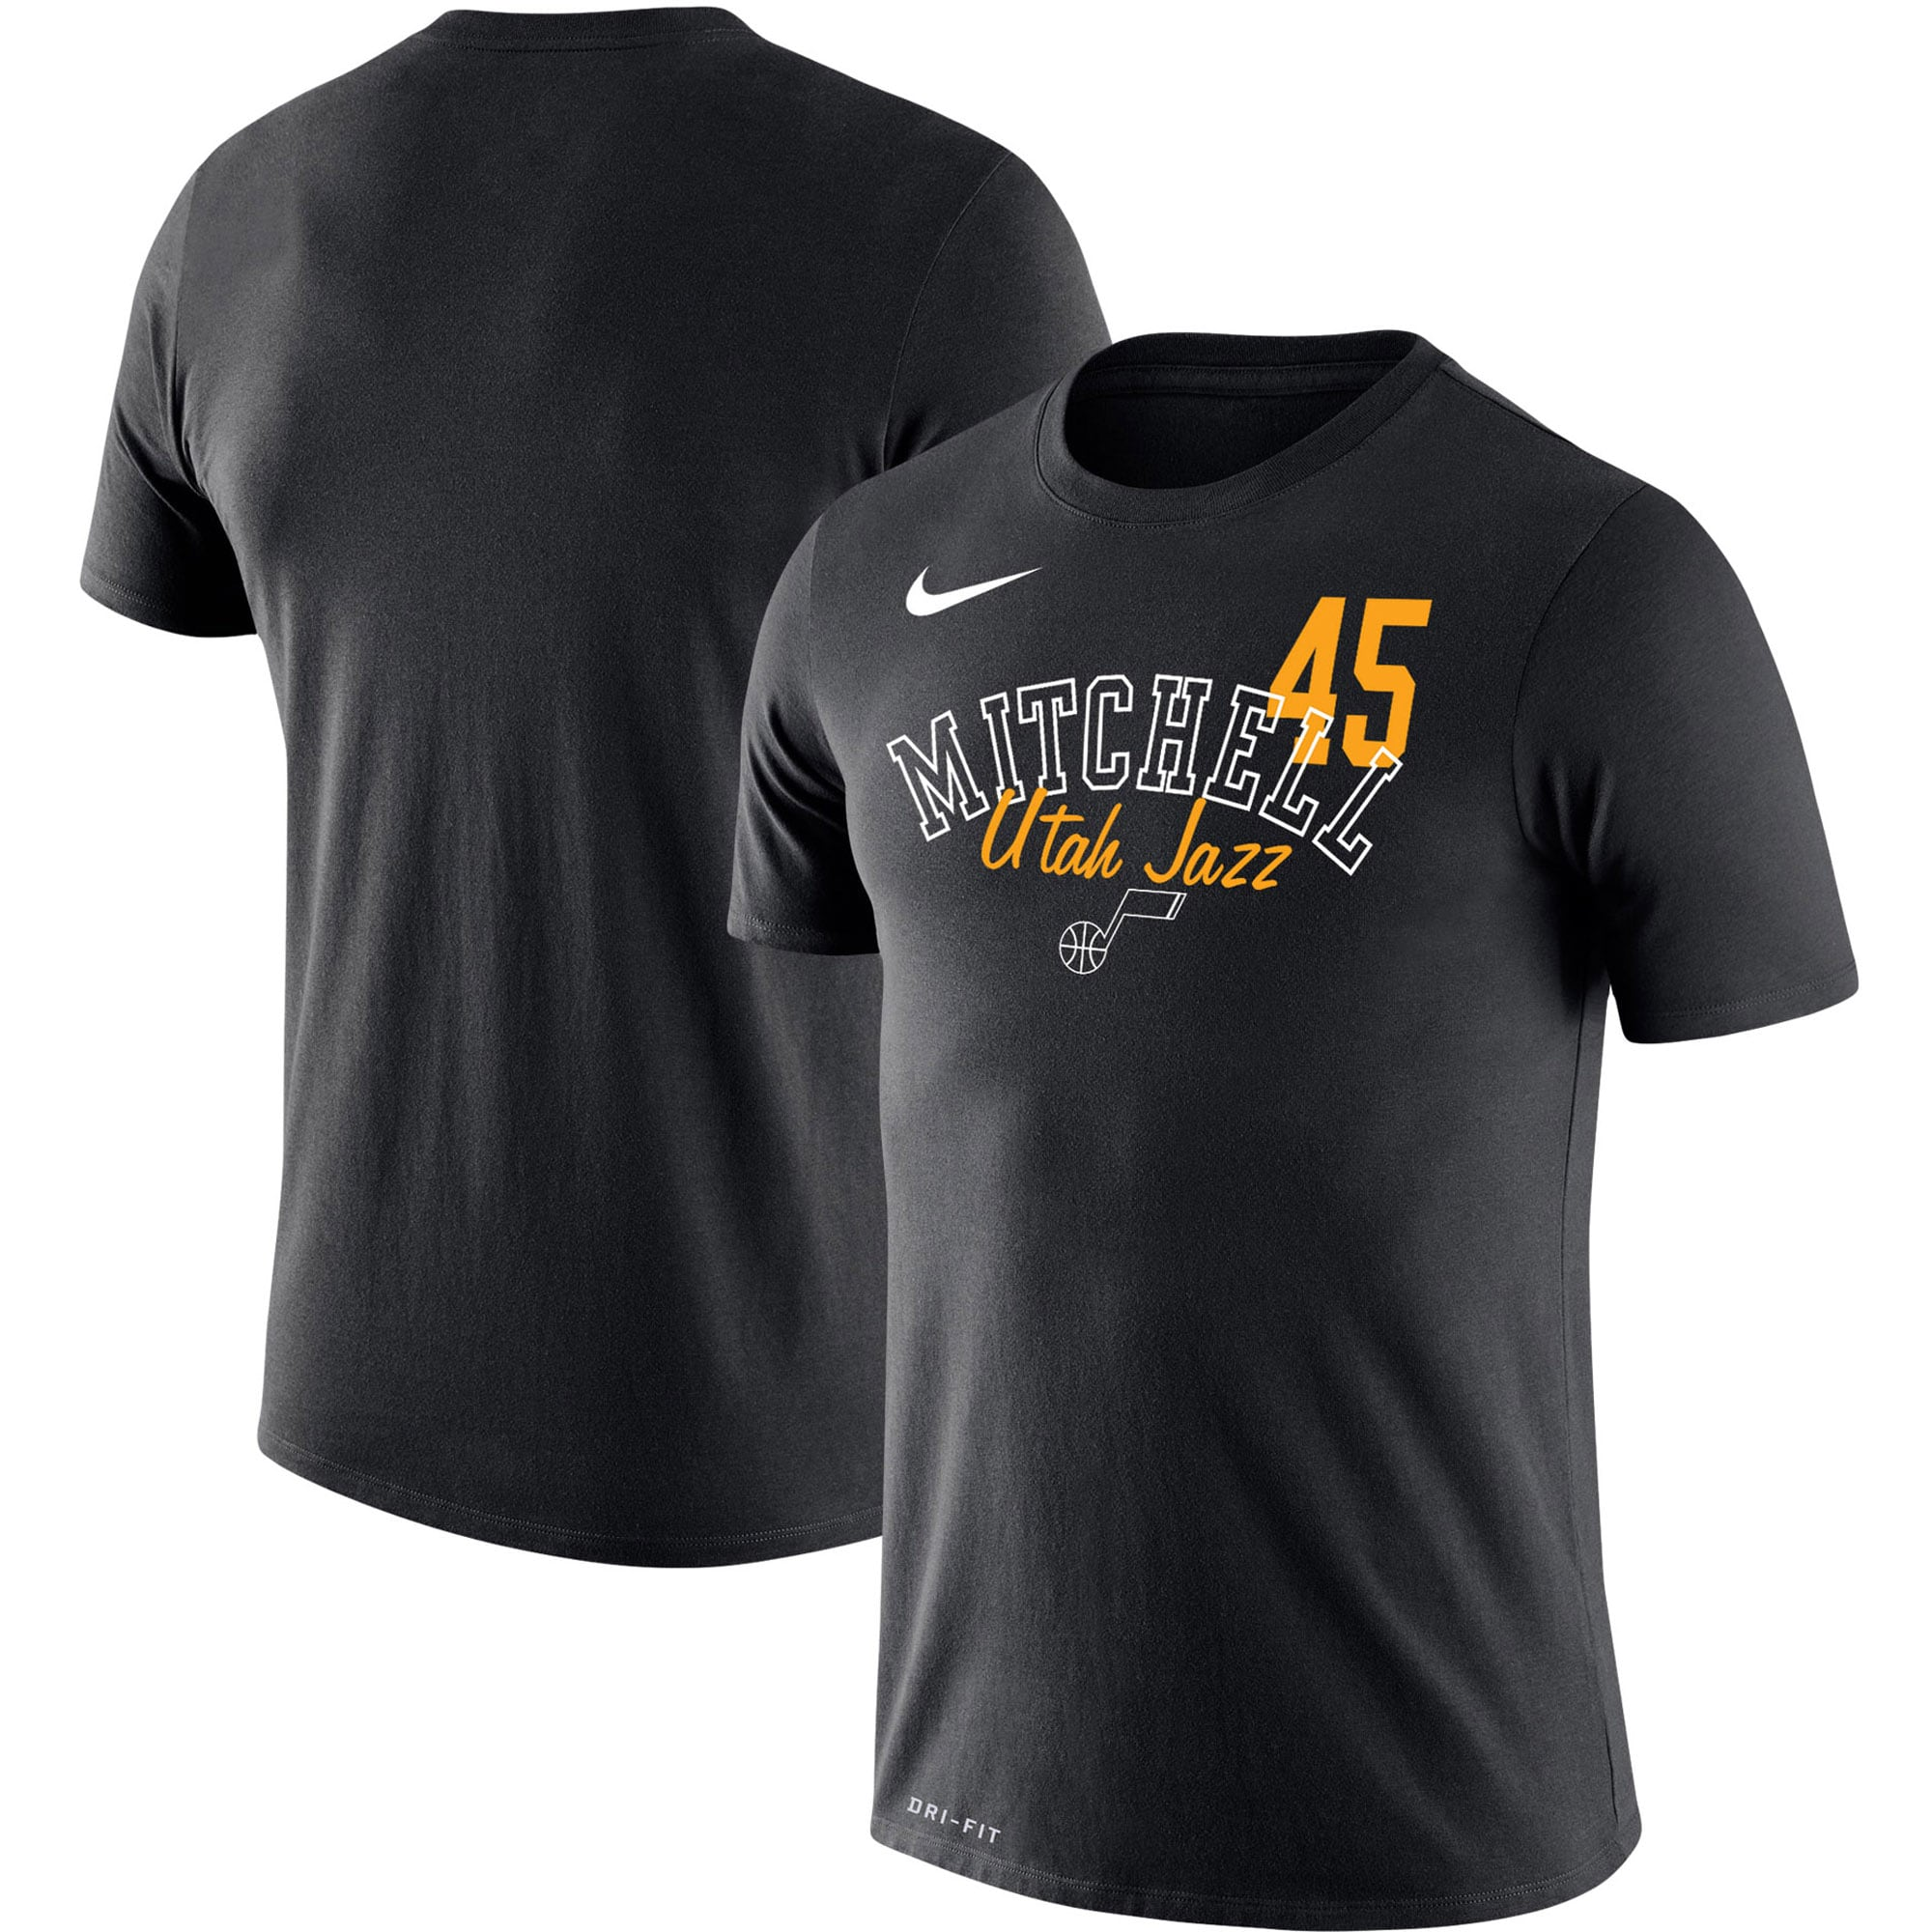 Donovan Mitchell Utah Jazz Nike Player Performance T-Shirt - Black